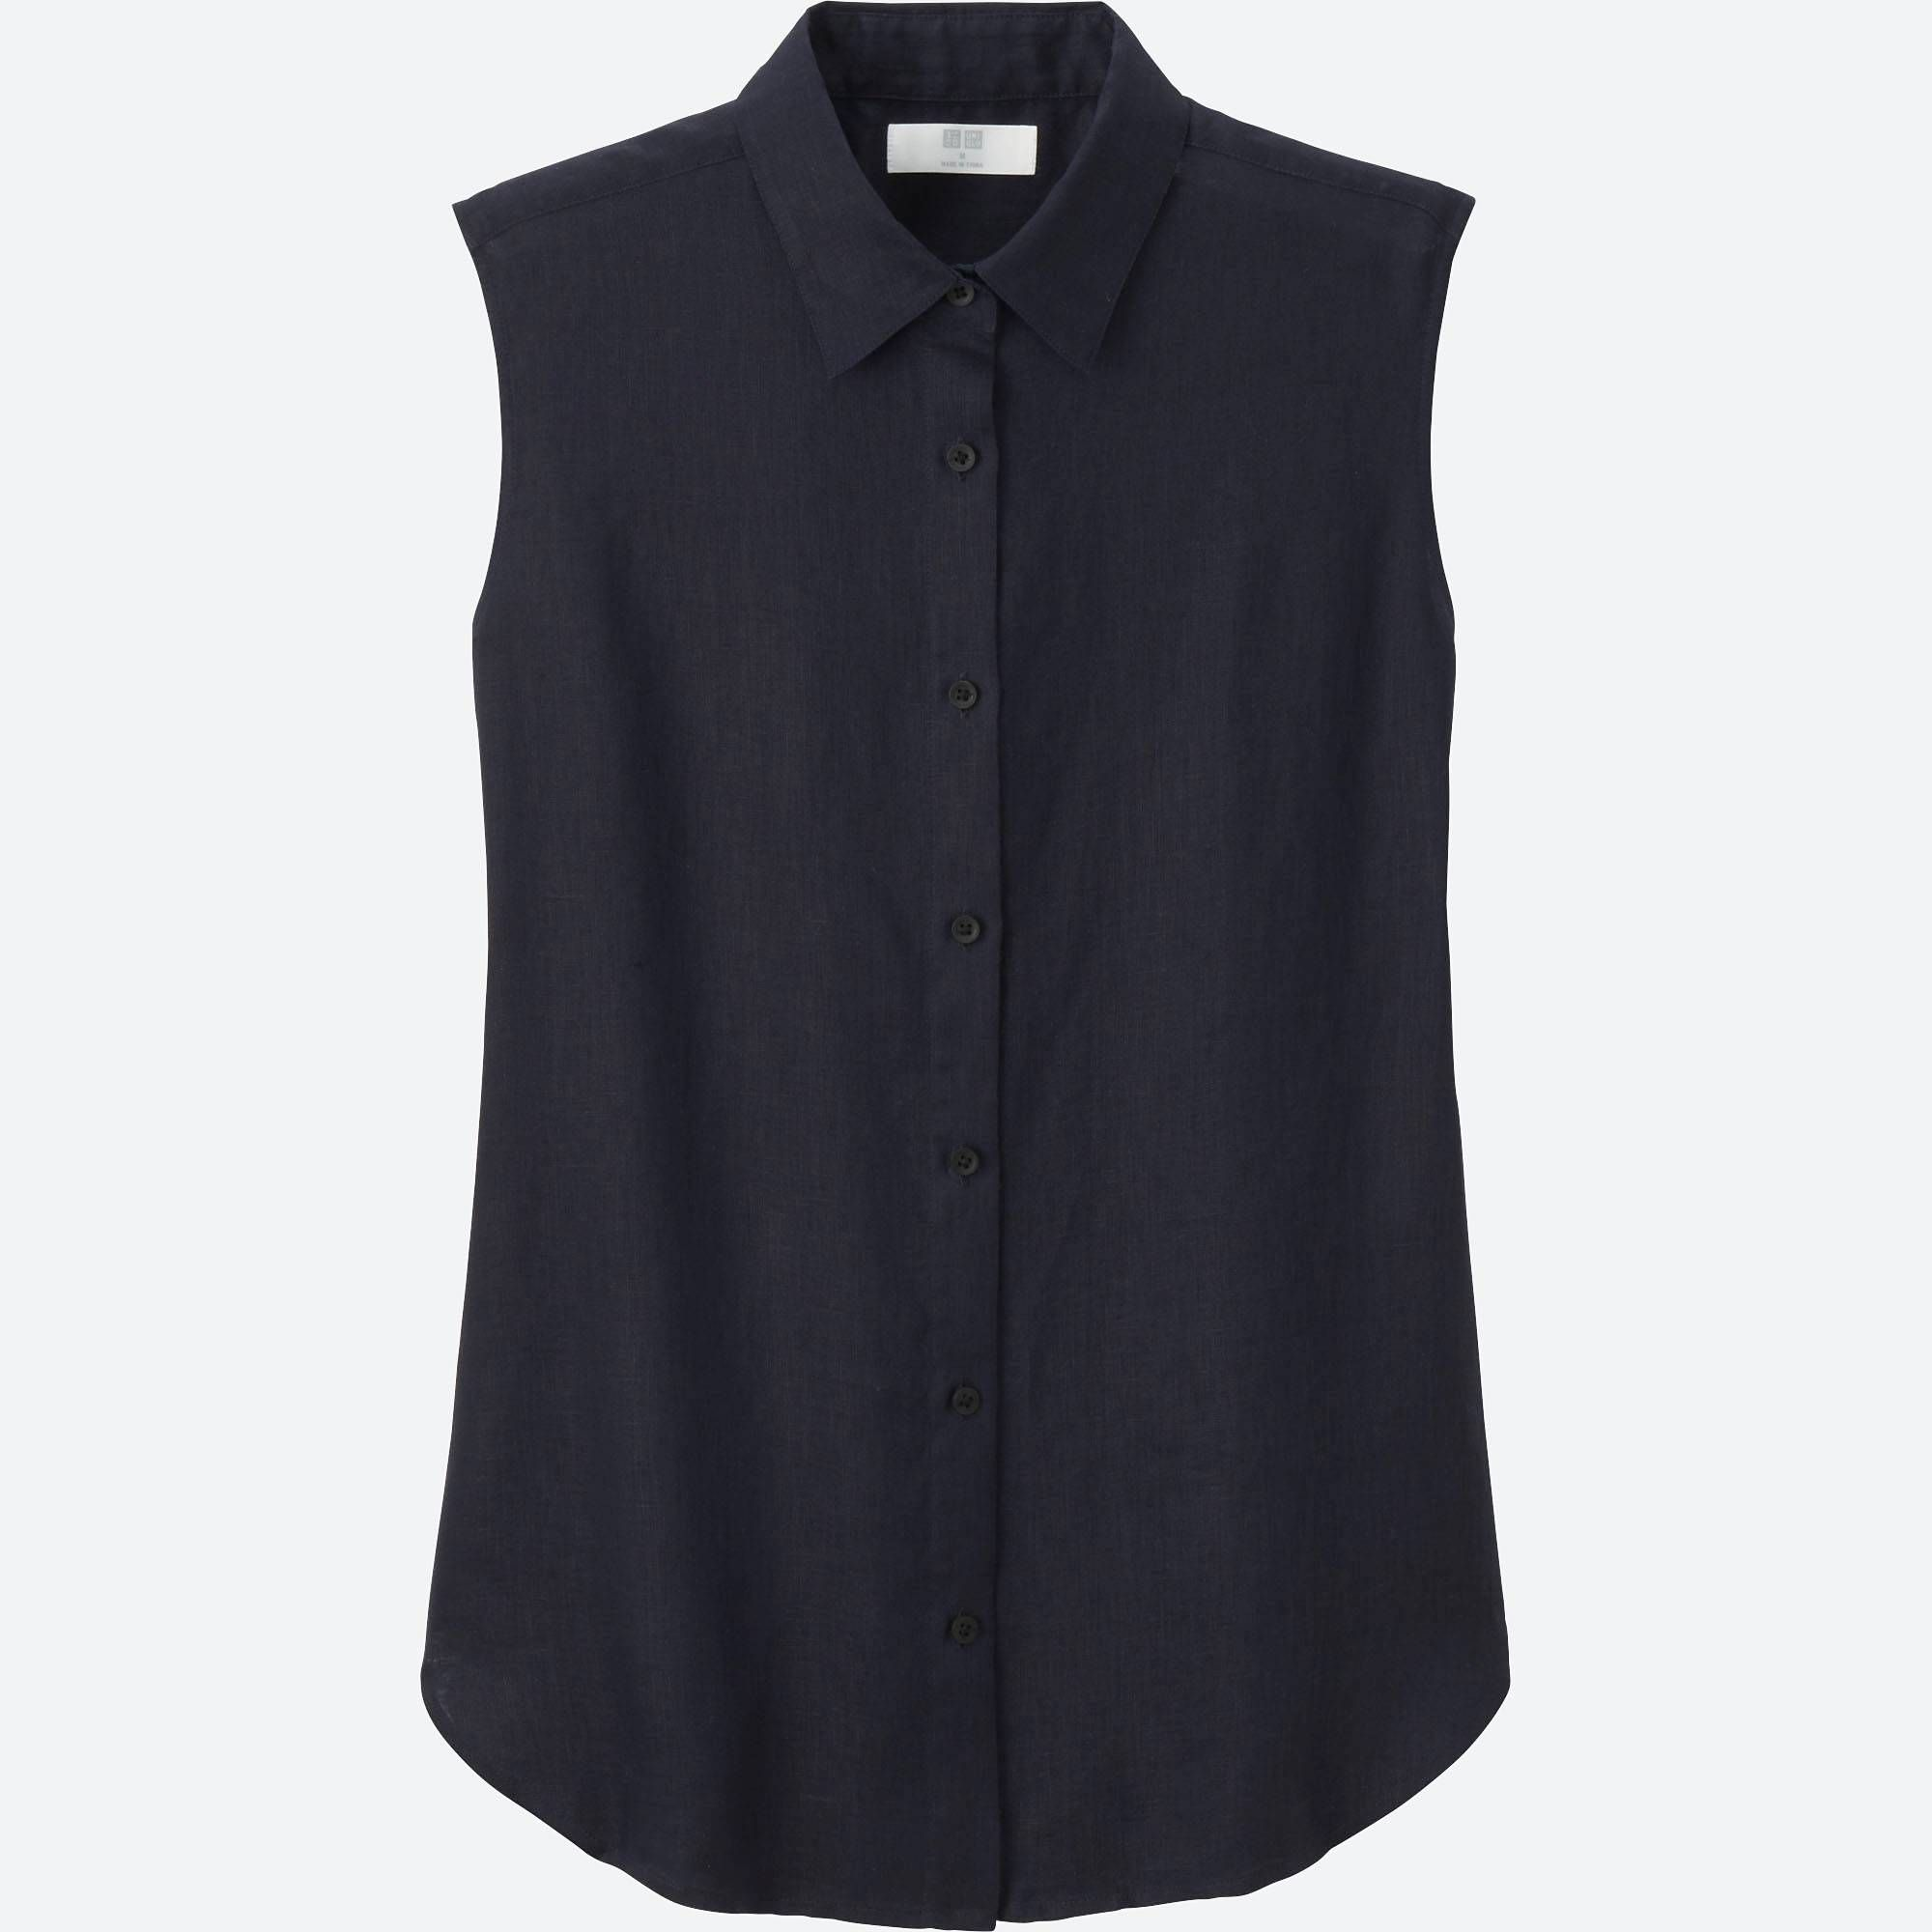 9f9174c4e2af8 Women premium linen sleeveless shirt in 2019